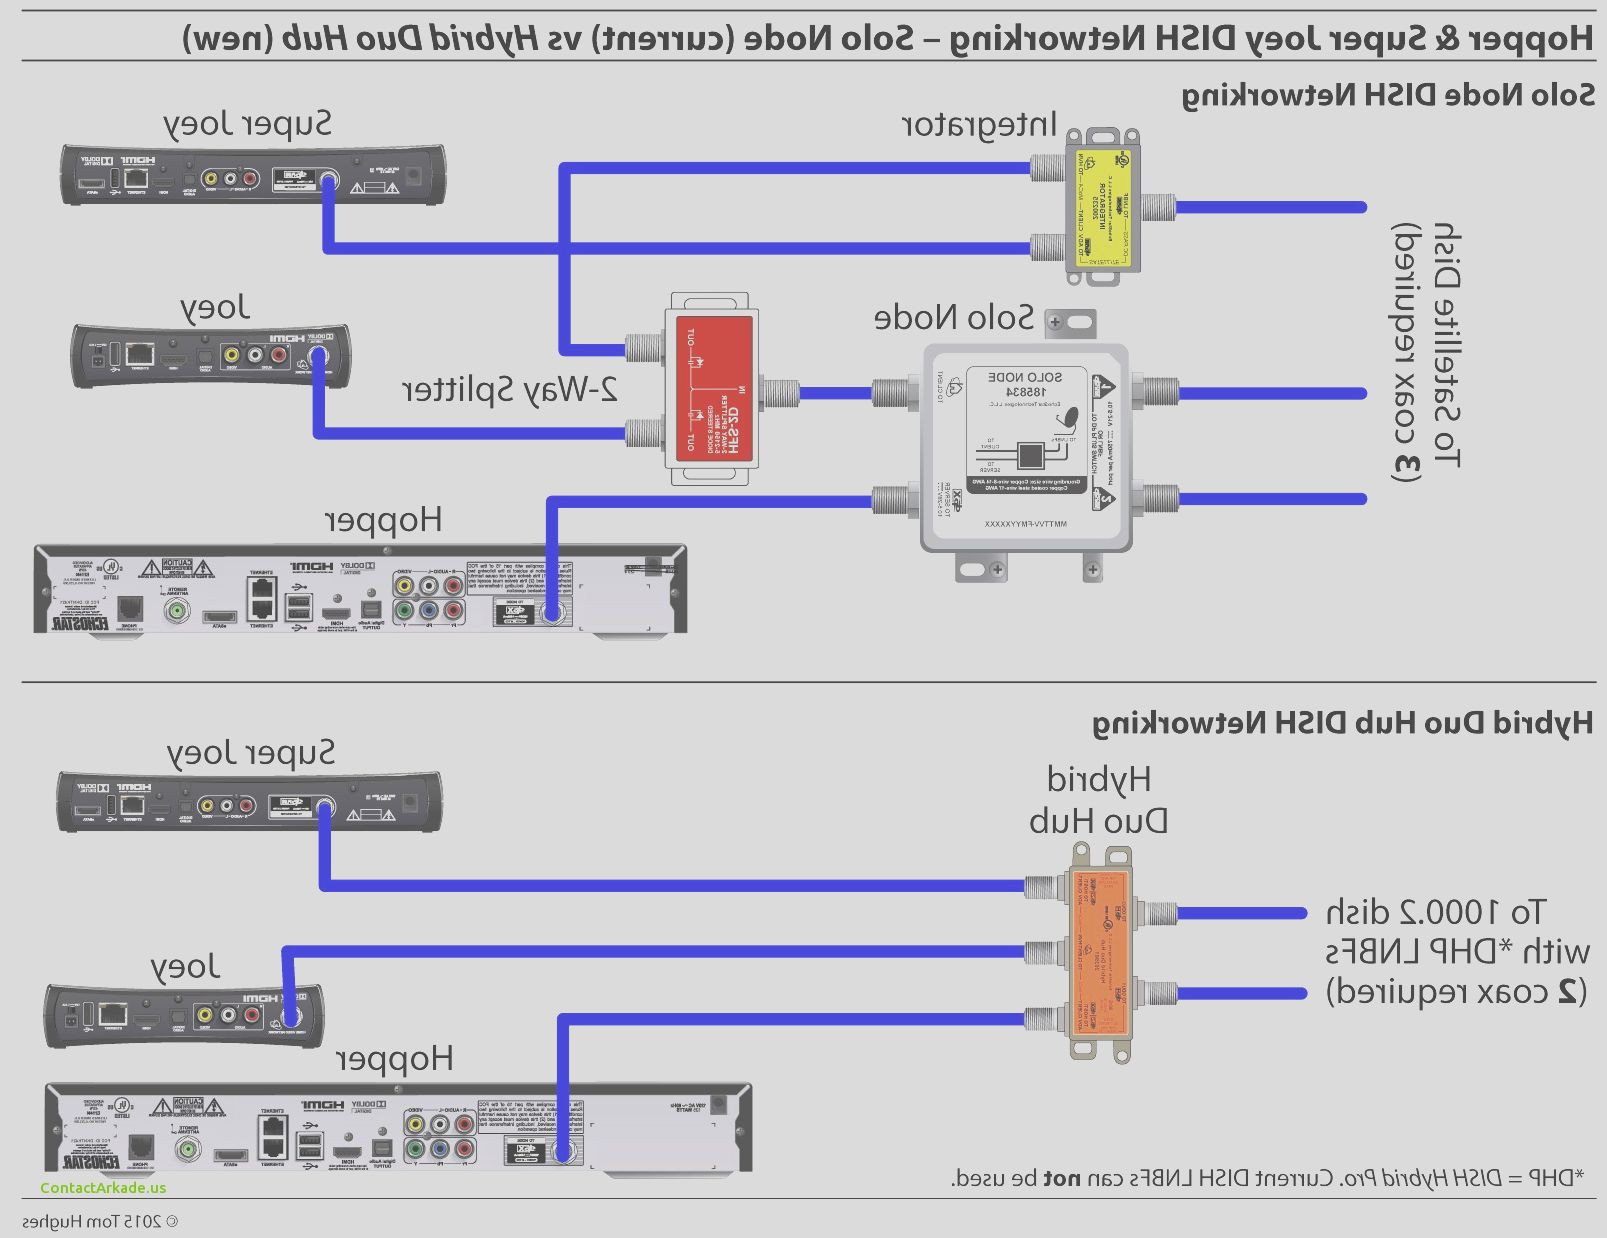 dish network wiring diagram Download-Wiring Diagram for Cat5 Network Cable New Rv Cable and Satellite Wiring Diagram Elegant Awesome Dish 7-p